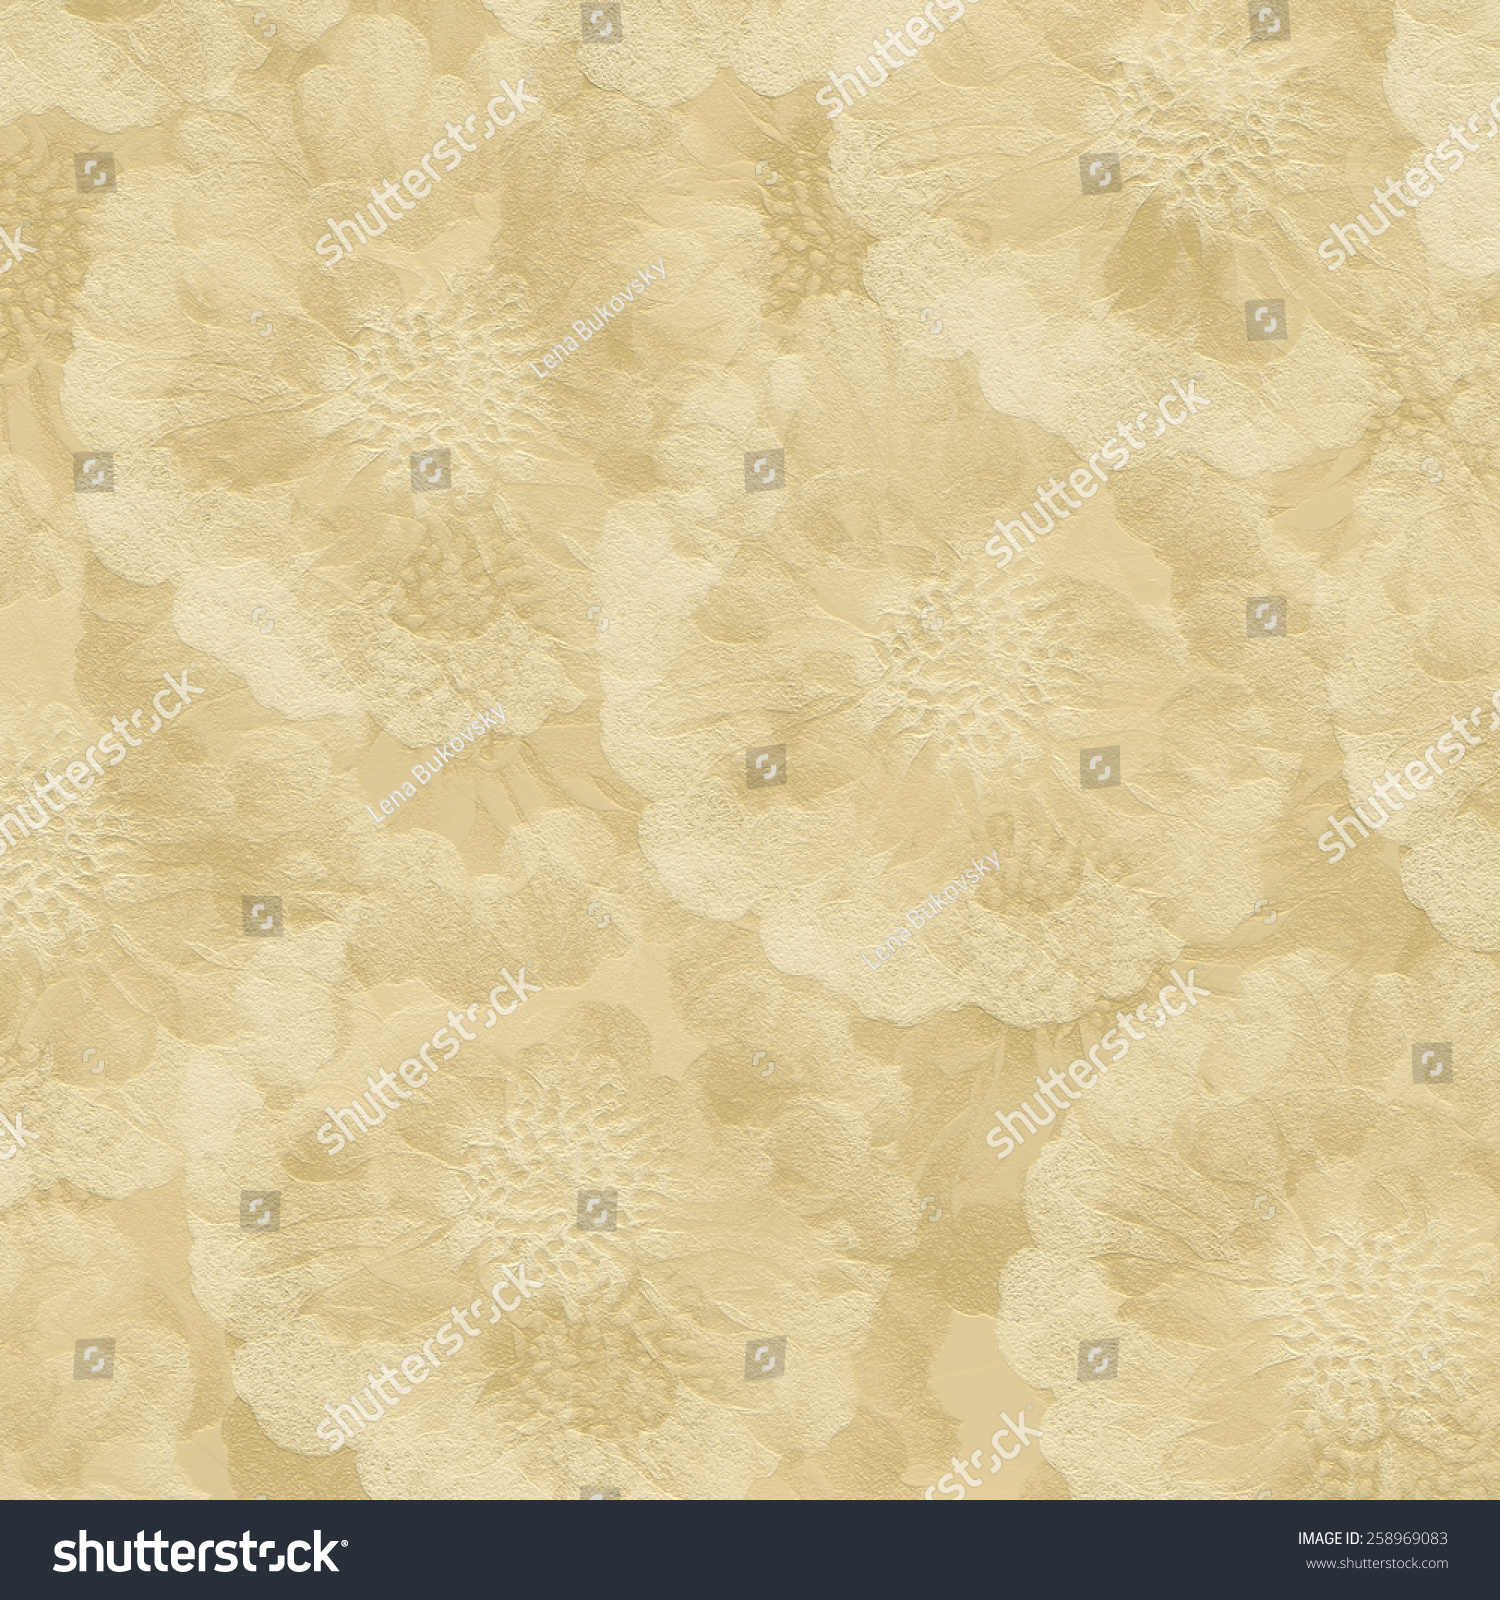 Gypsum Board Texture : Seamless pattern gypsum board painted brown stock